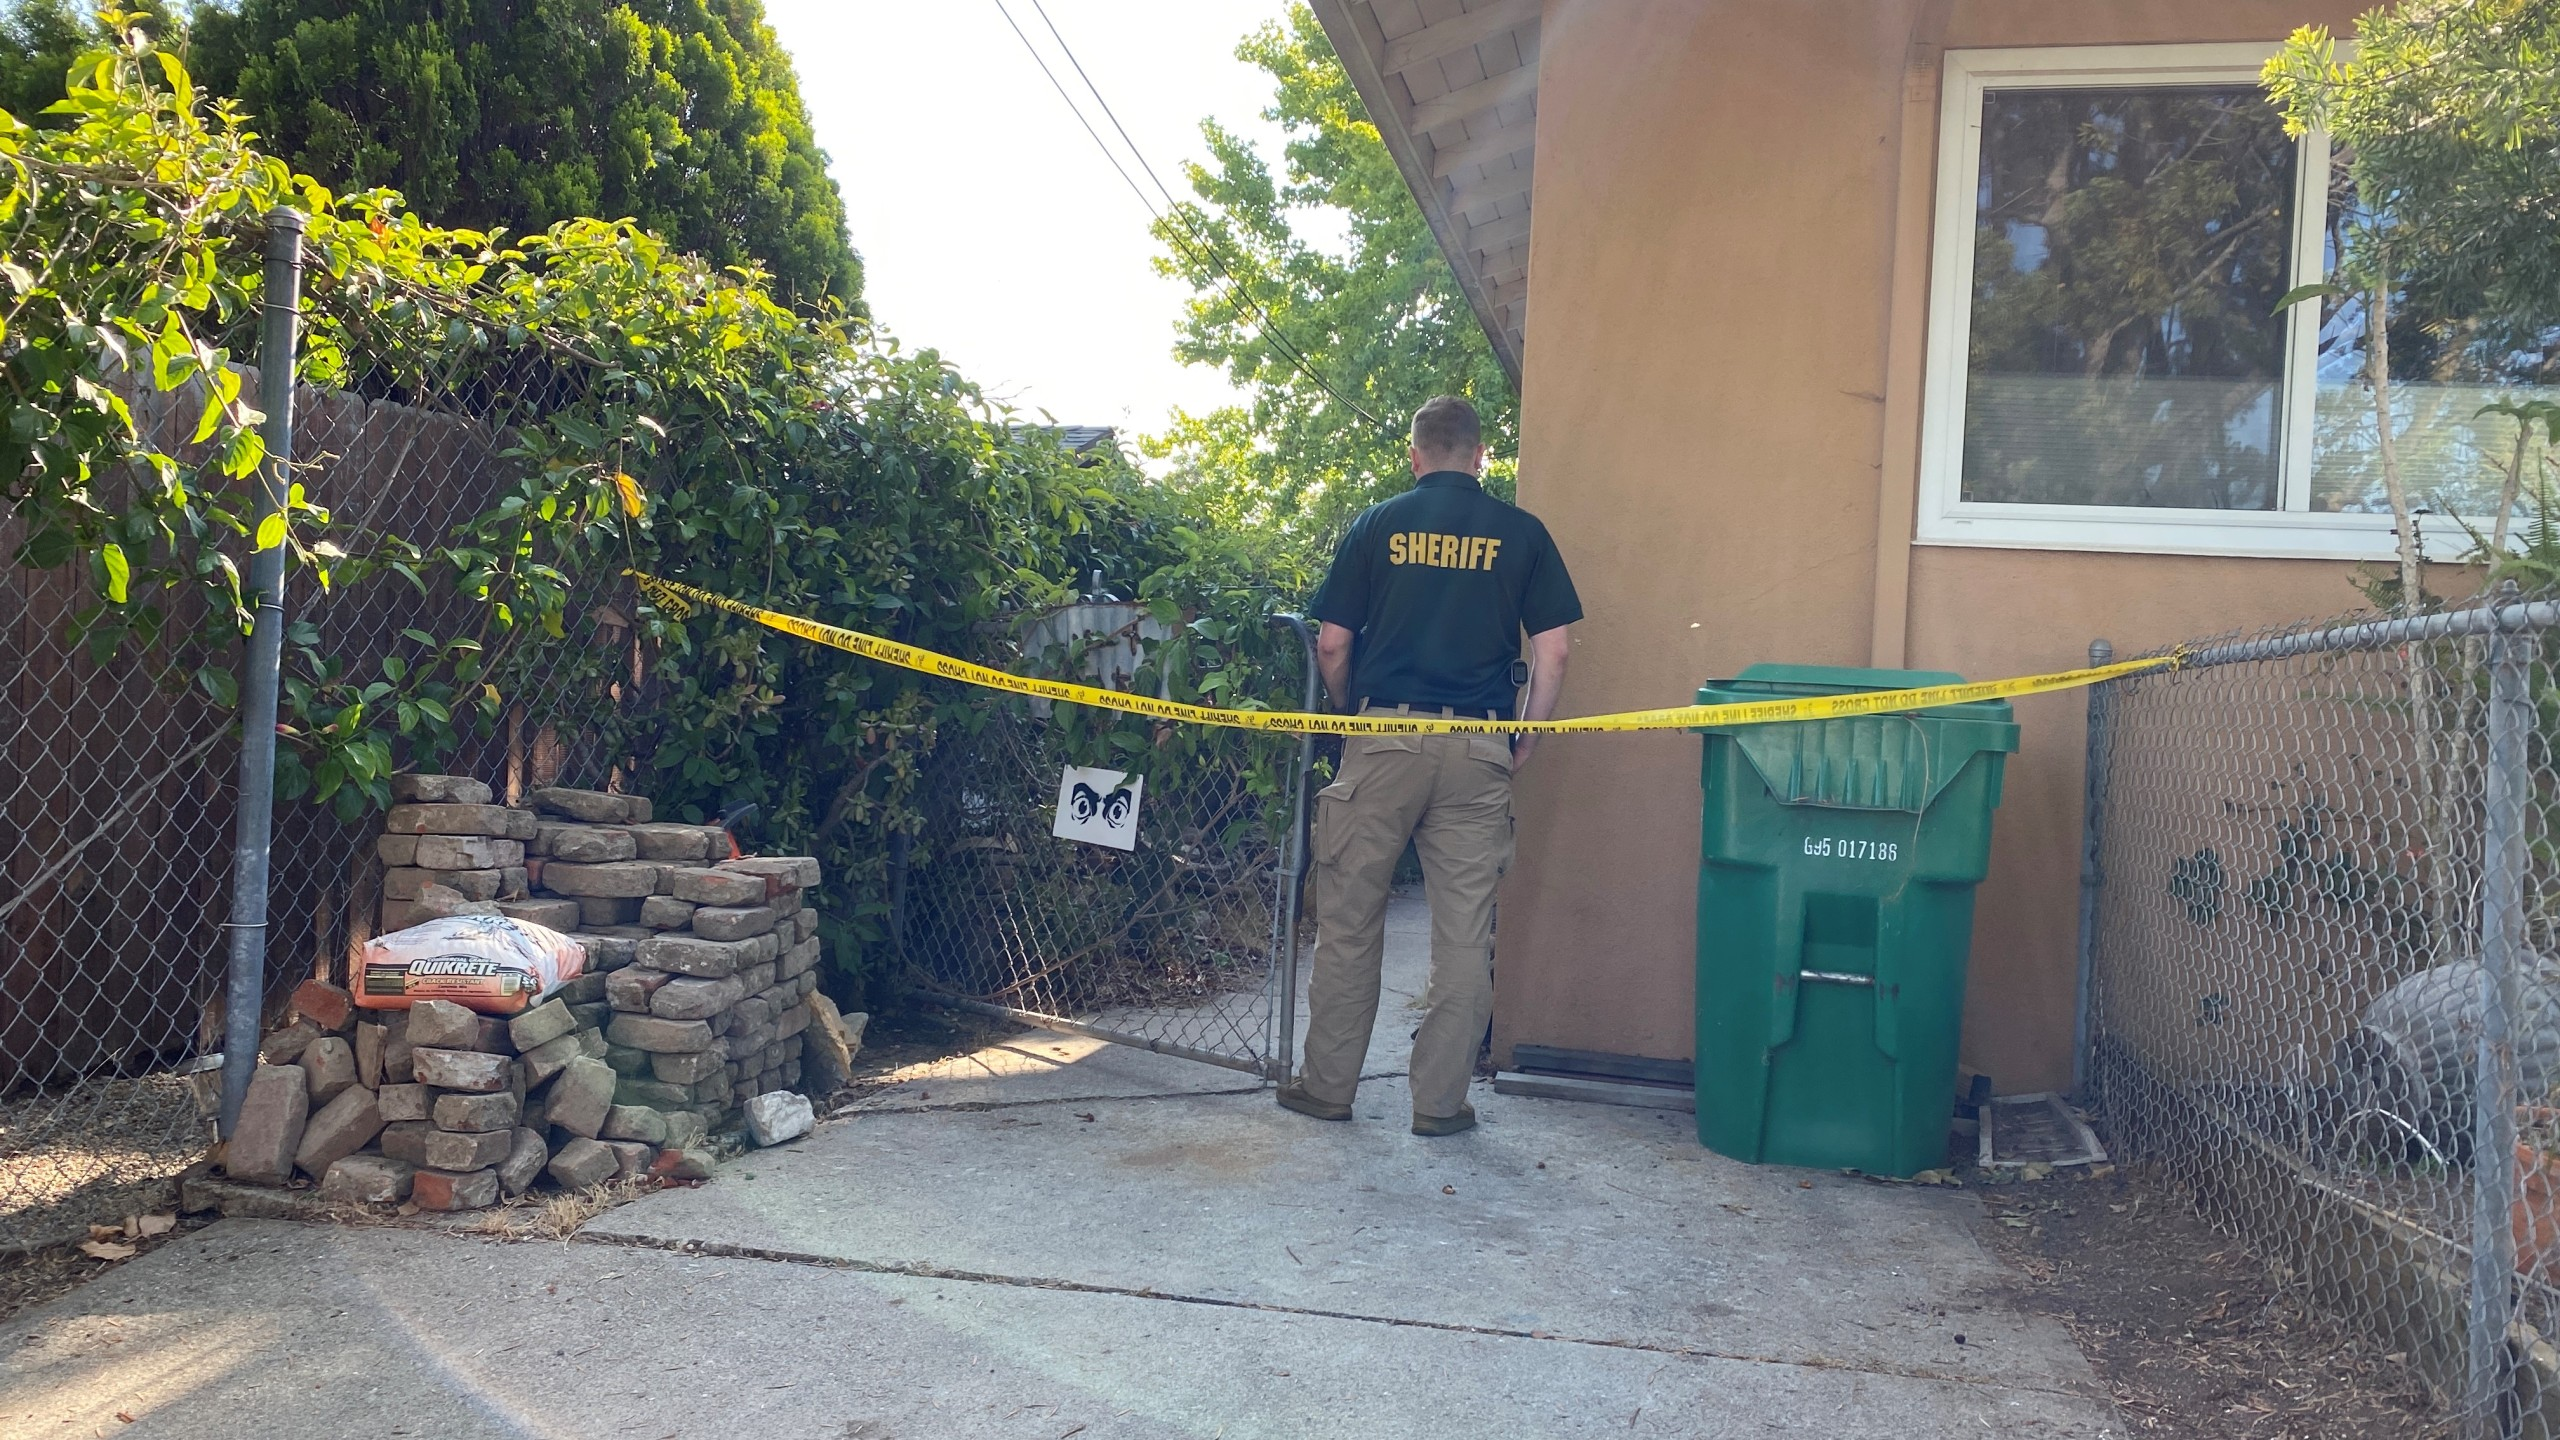 A Santa Barbara County sheriff's official responds to the scene of a homicide on July 15, 2021 in this photo provided by the agency.